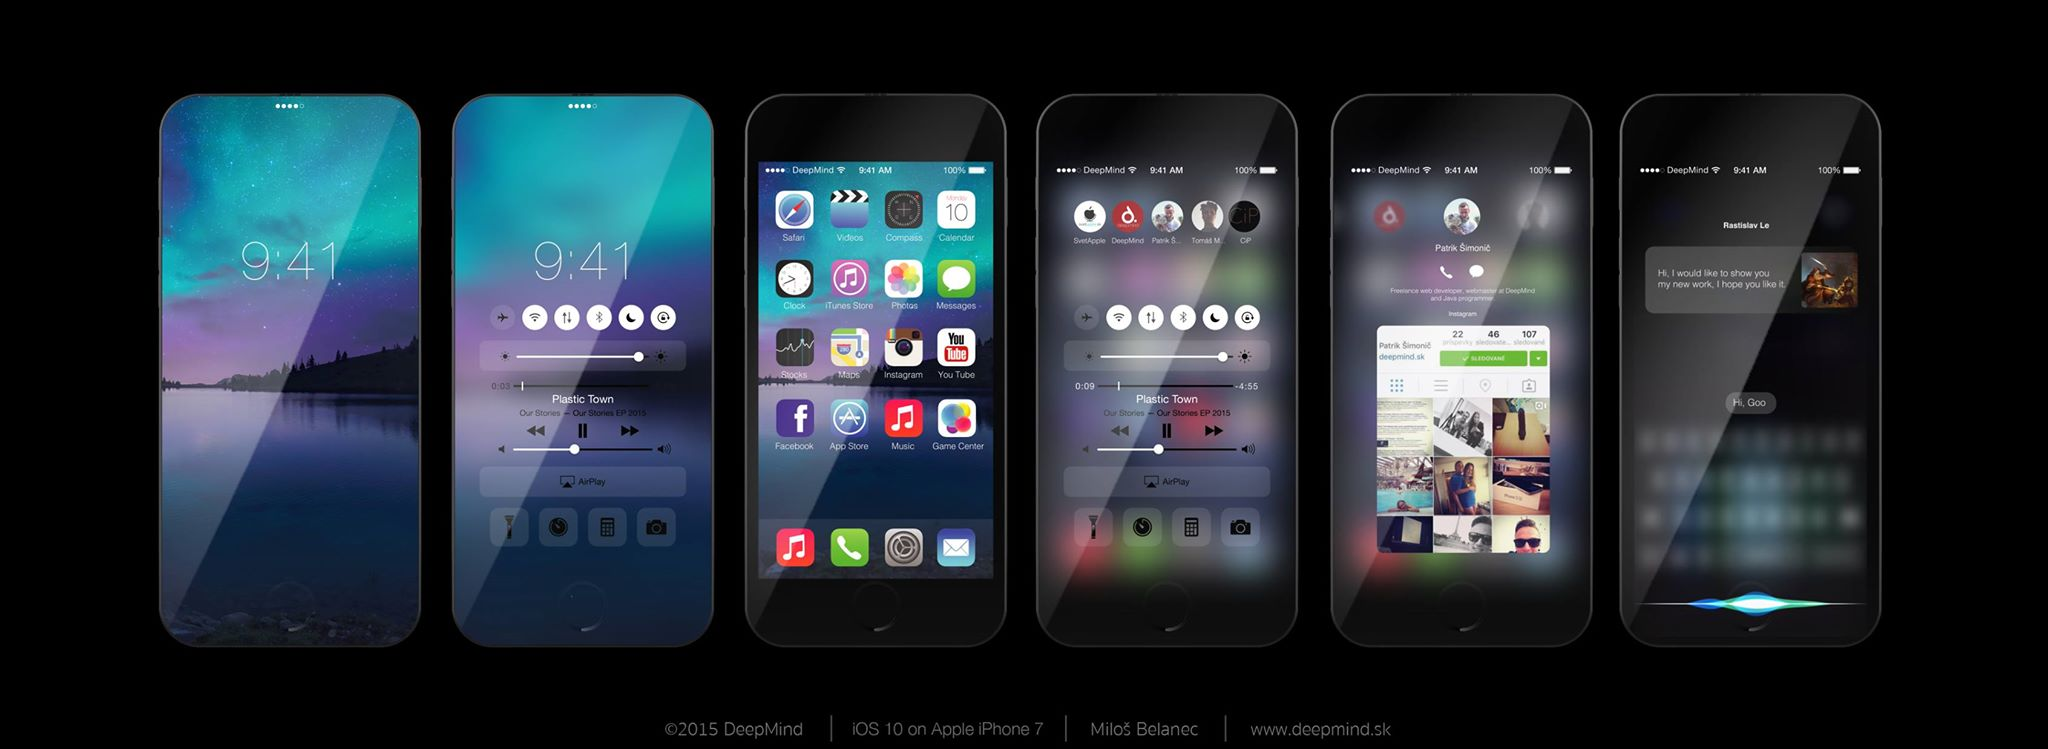 ios for iphone 7